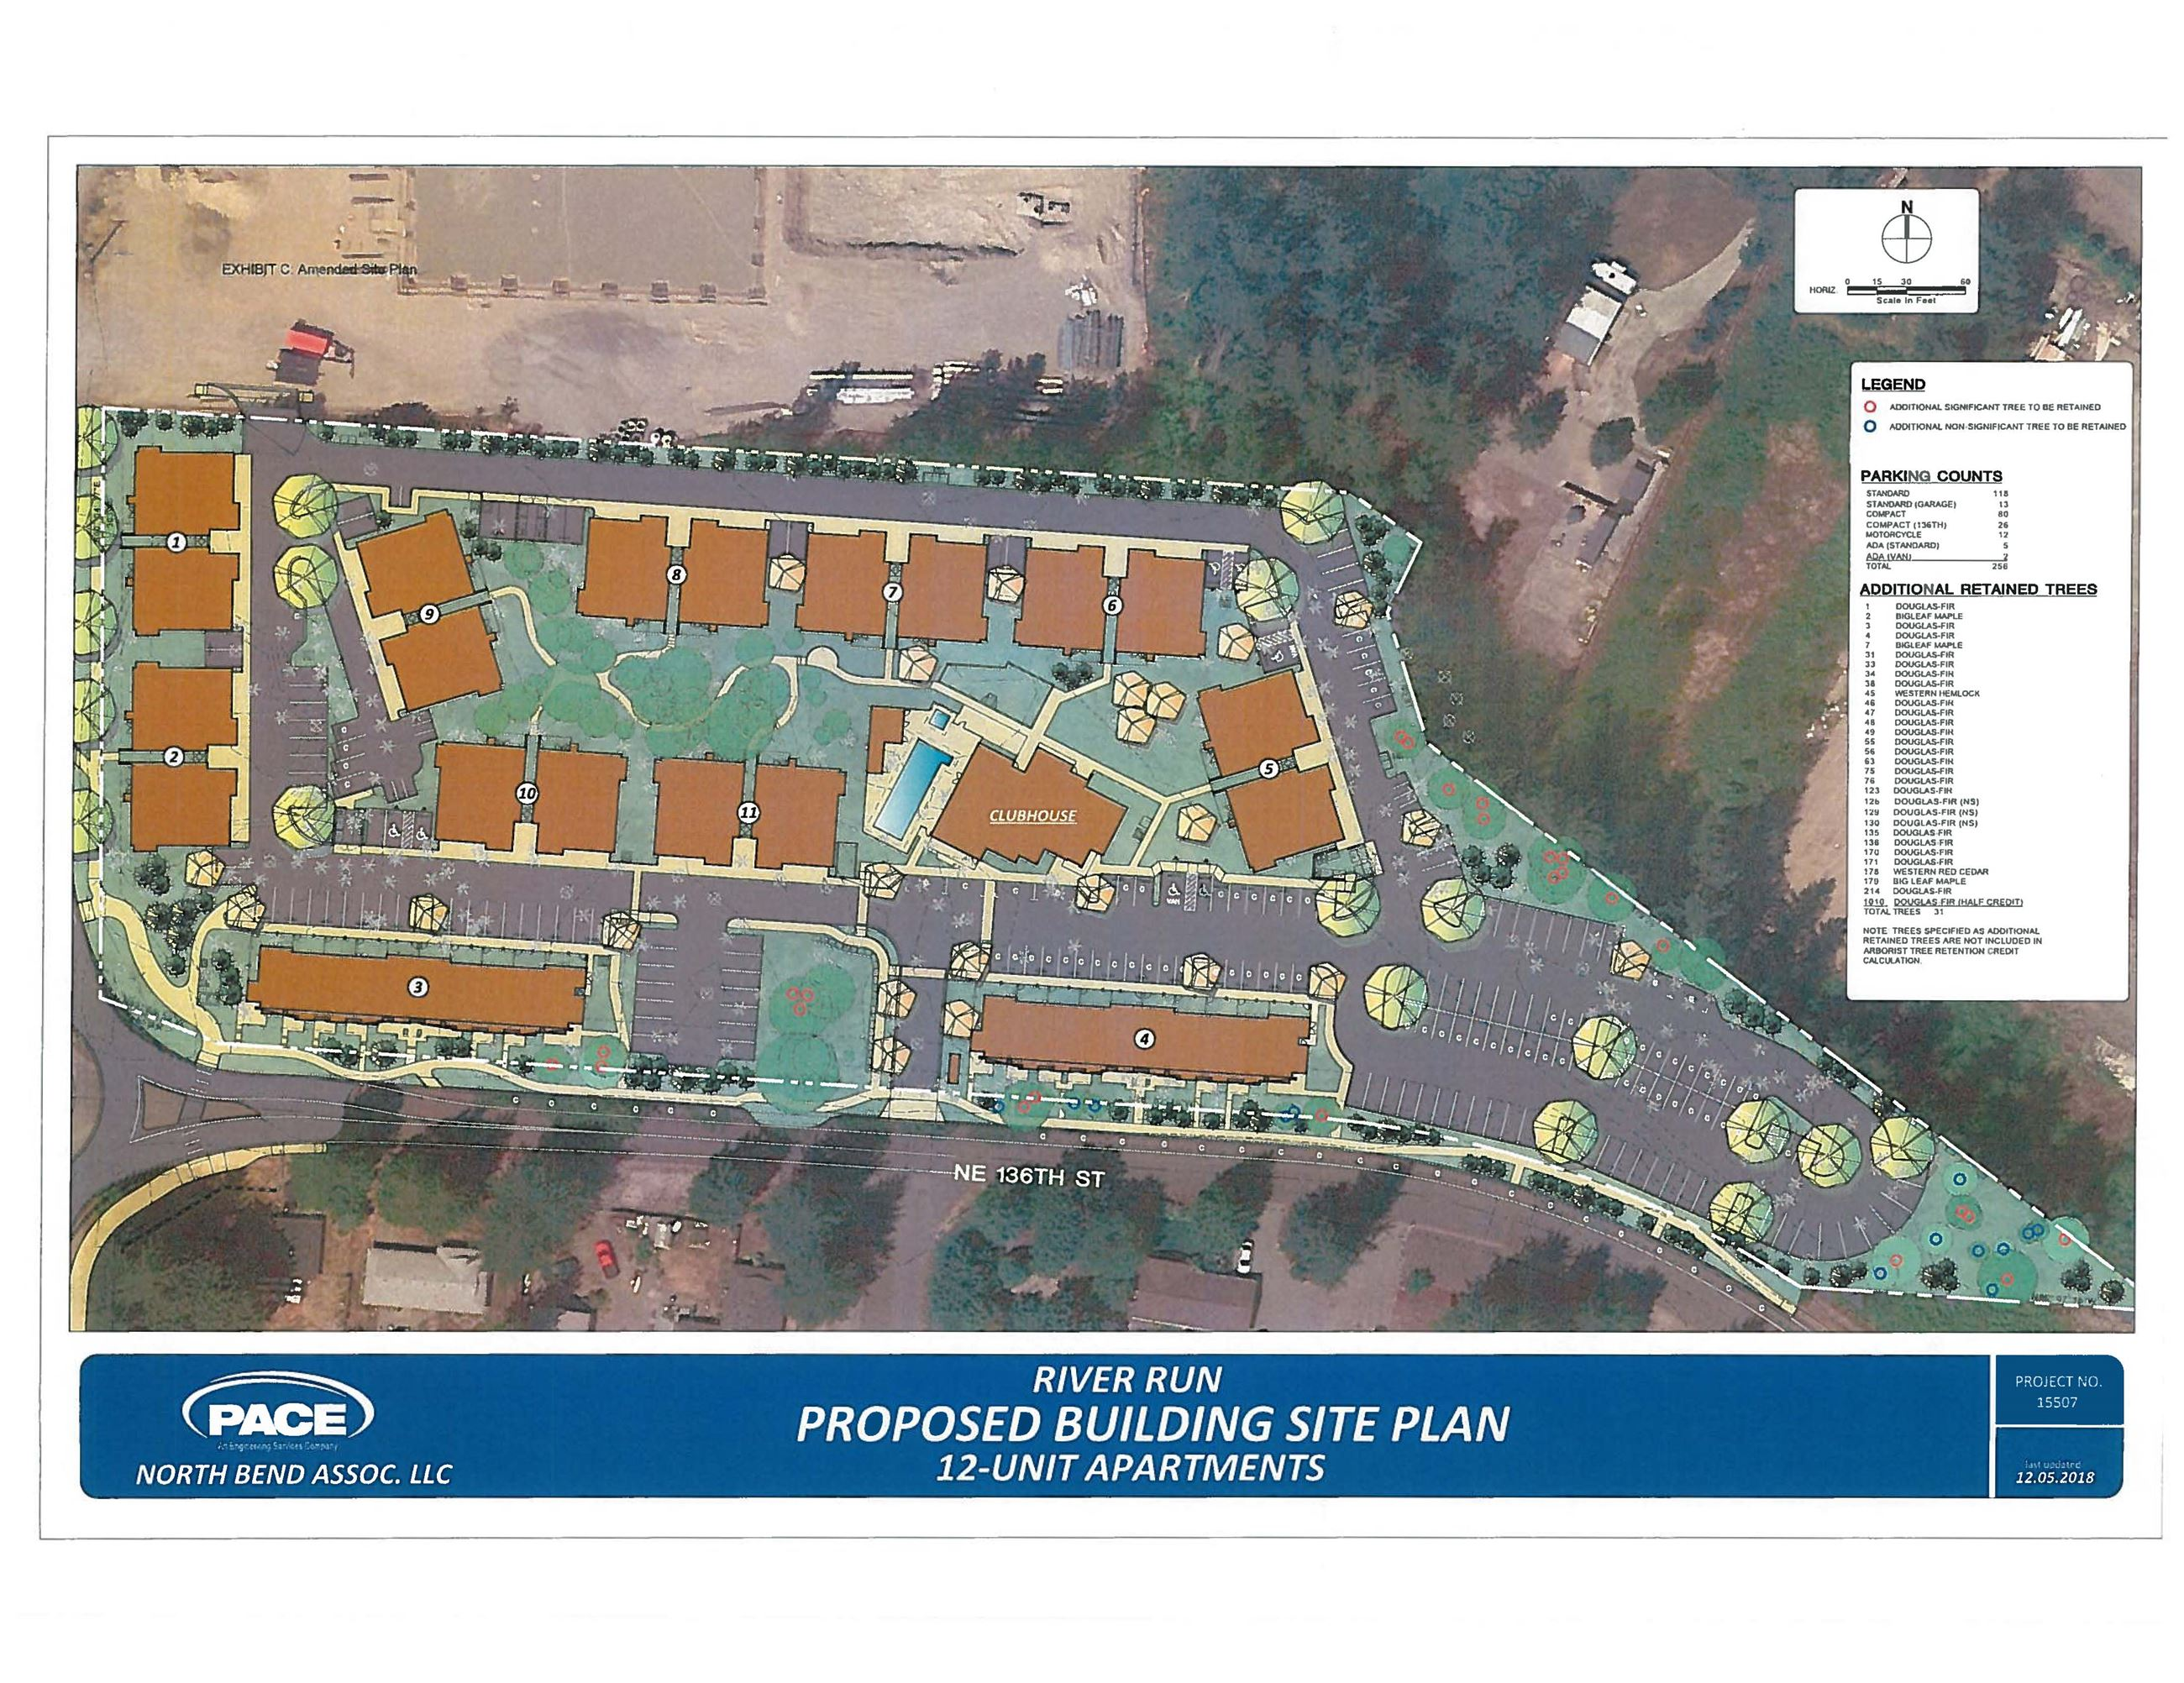 River Run Apartment Site Plan